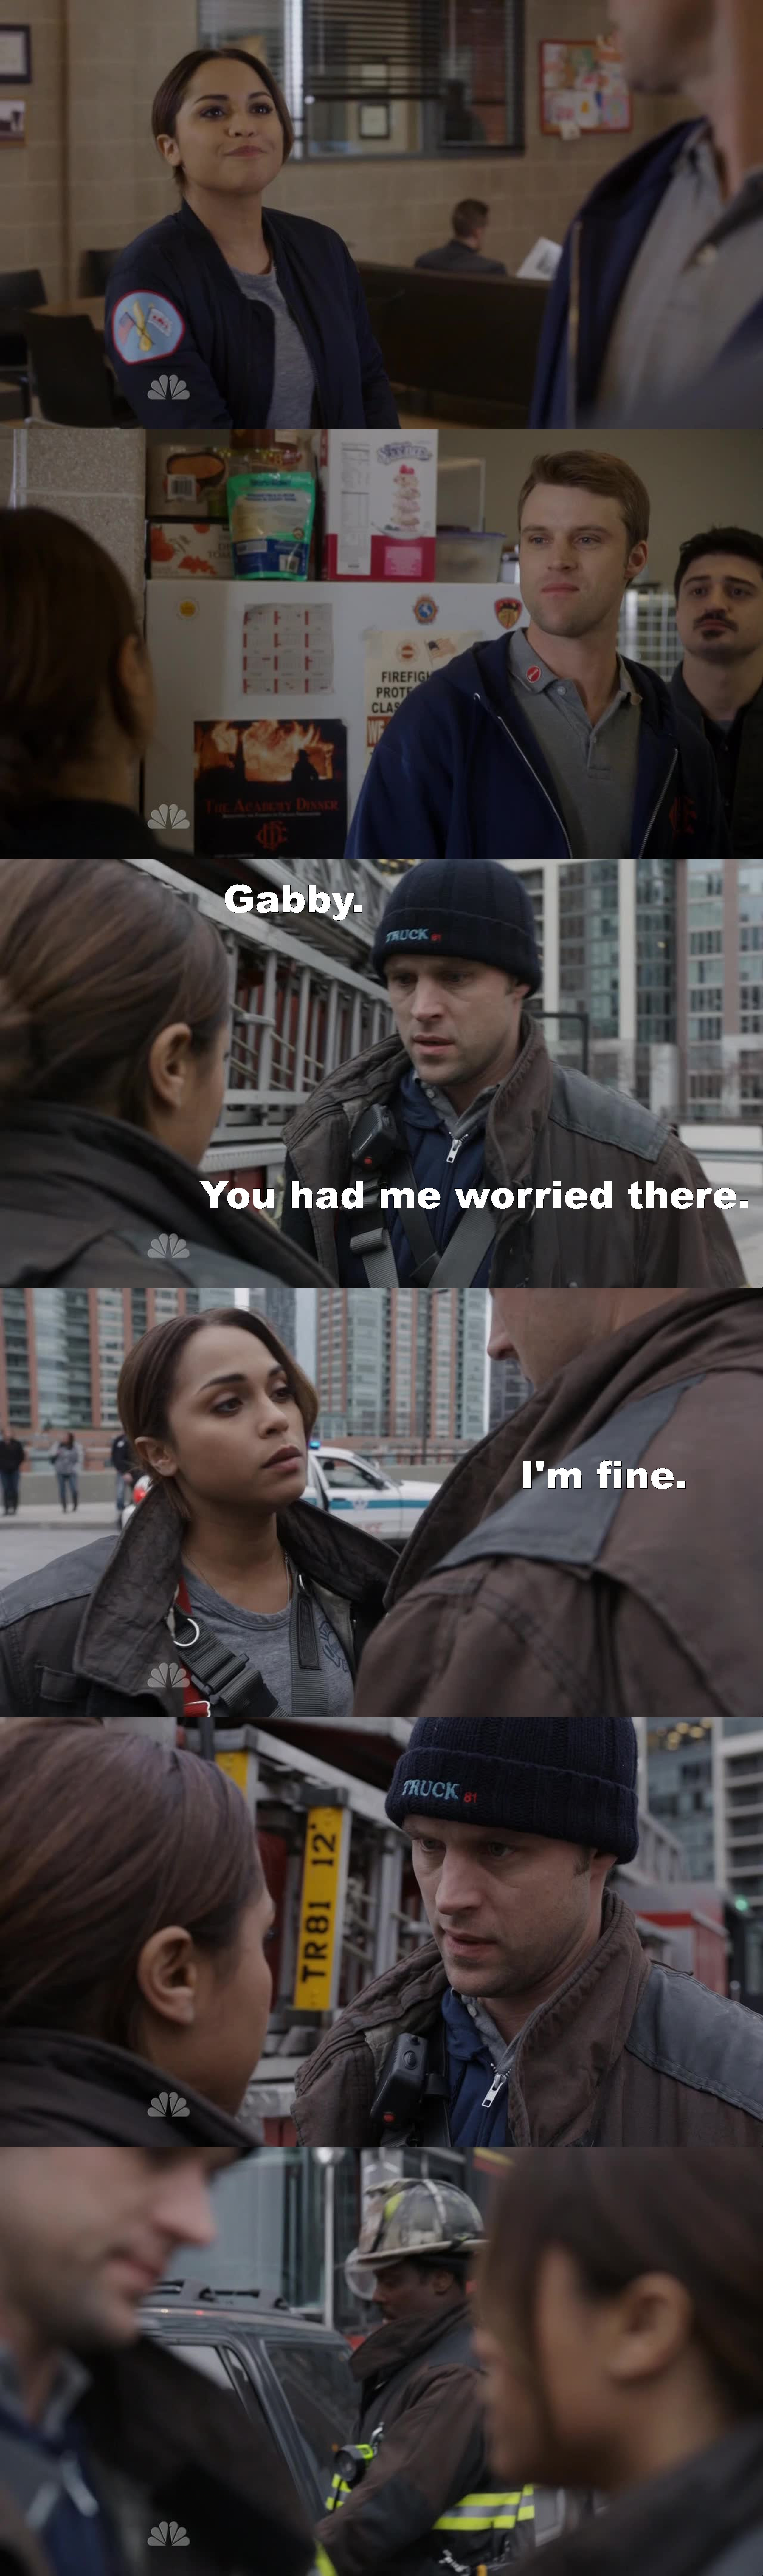 They are so not over! They are perfect! They should open their eyes and see how much they are meant to be! Meant for each other! #LongliveDawsey #Dawsey #Matt&Gabby